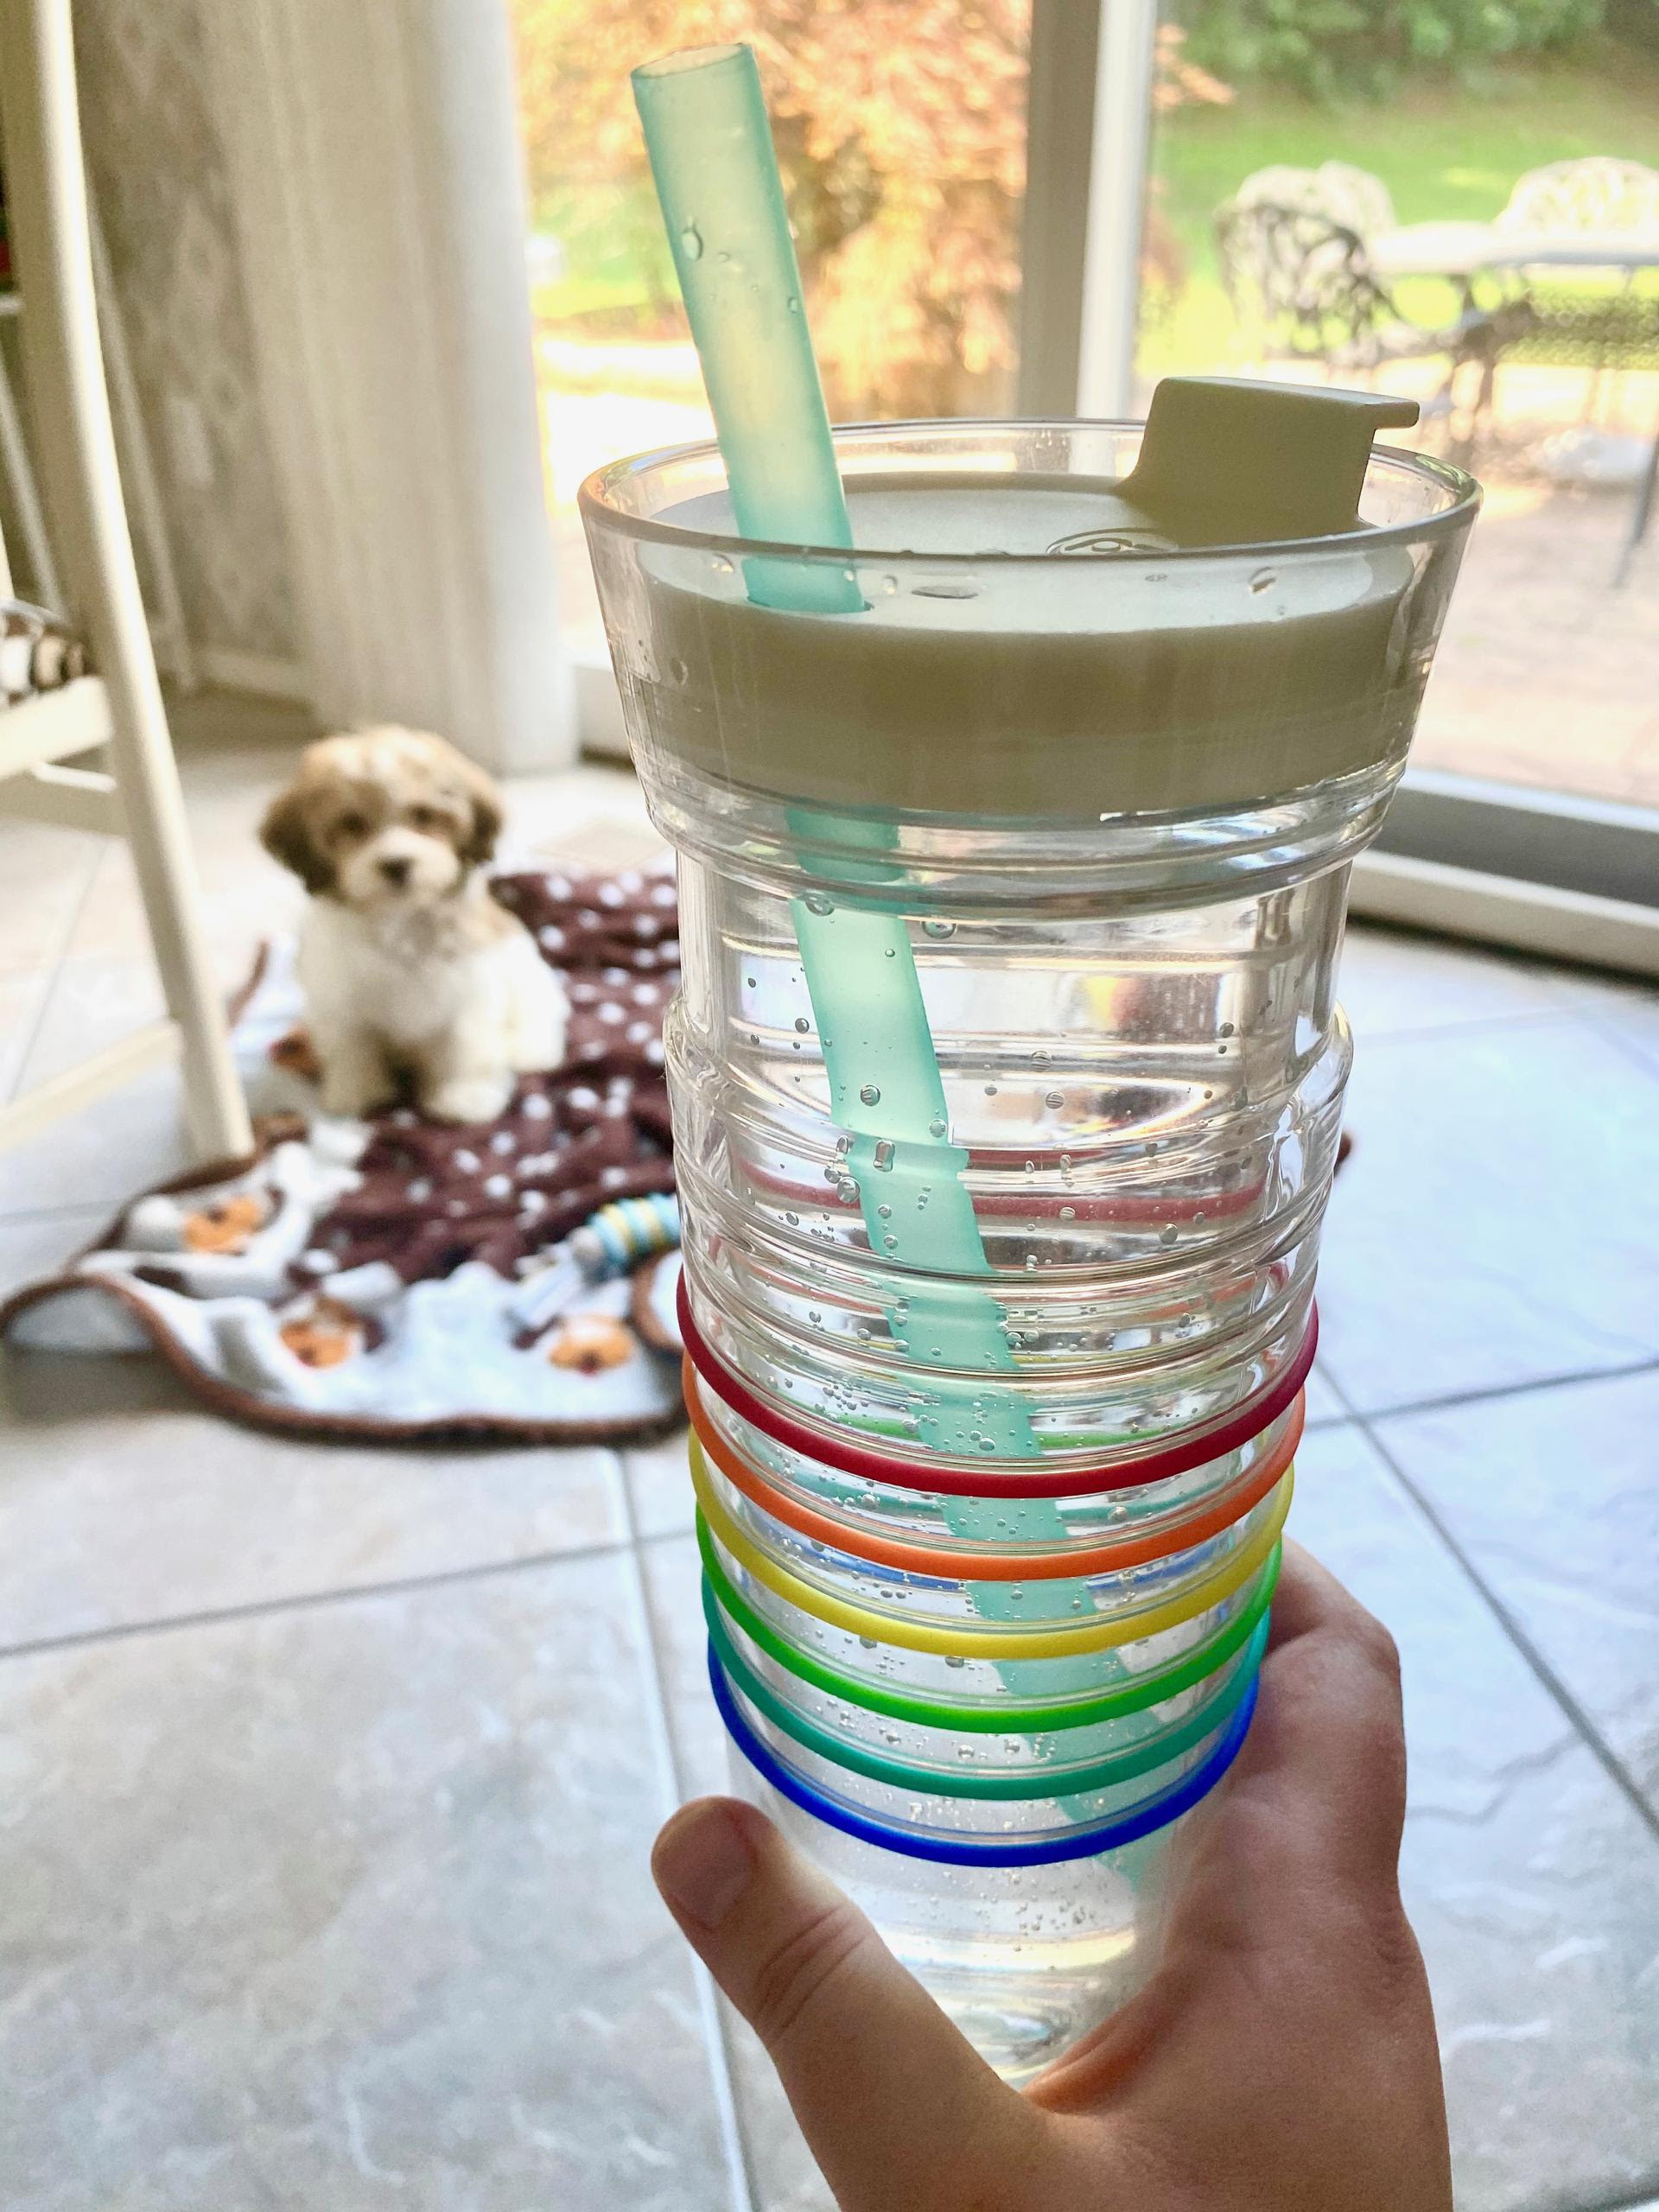 buzzfeed editor's clear water bottlr with rainbow colored bands and a teal straw